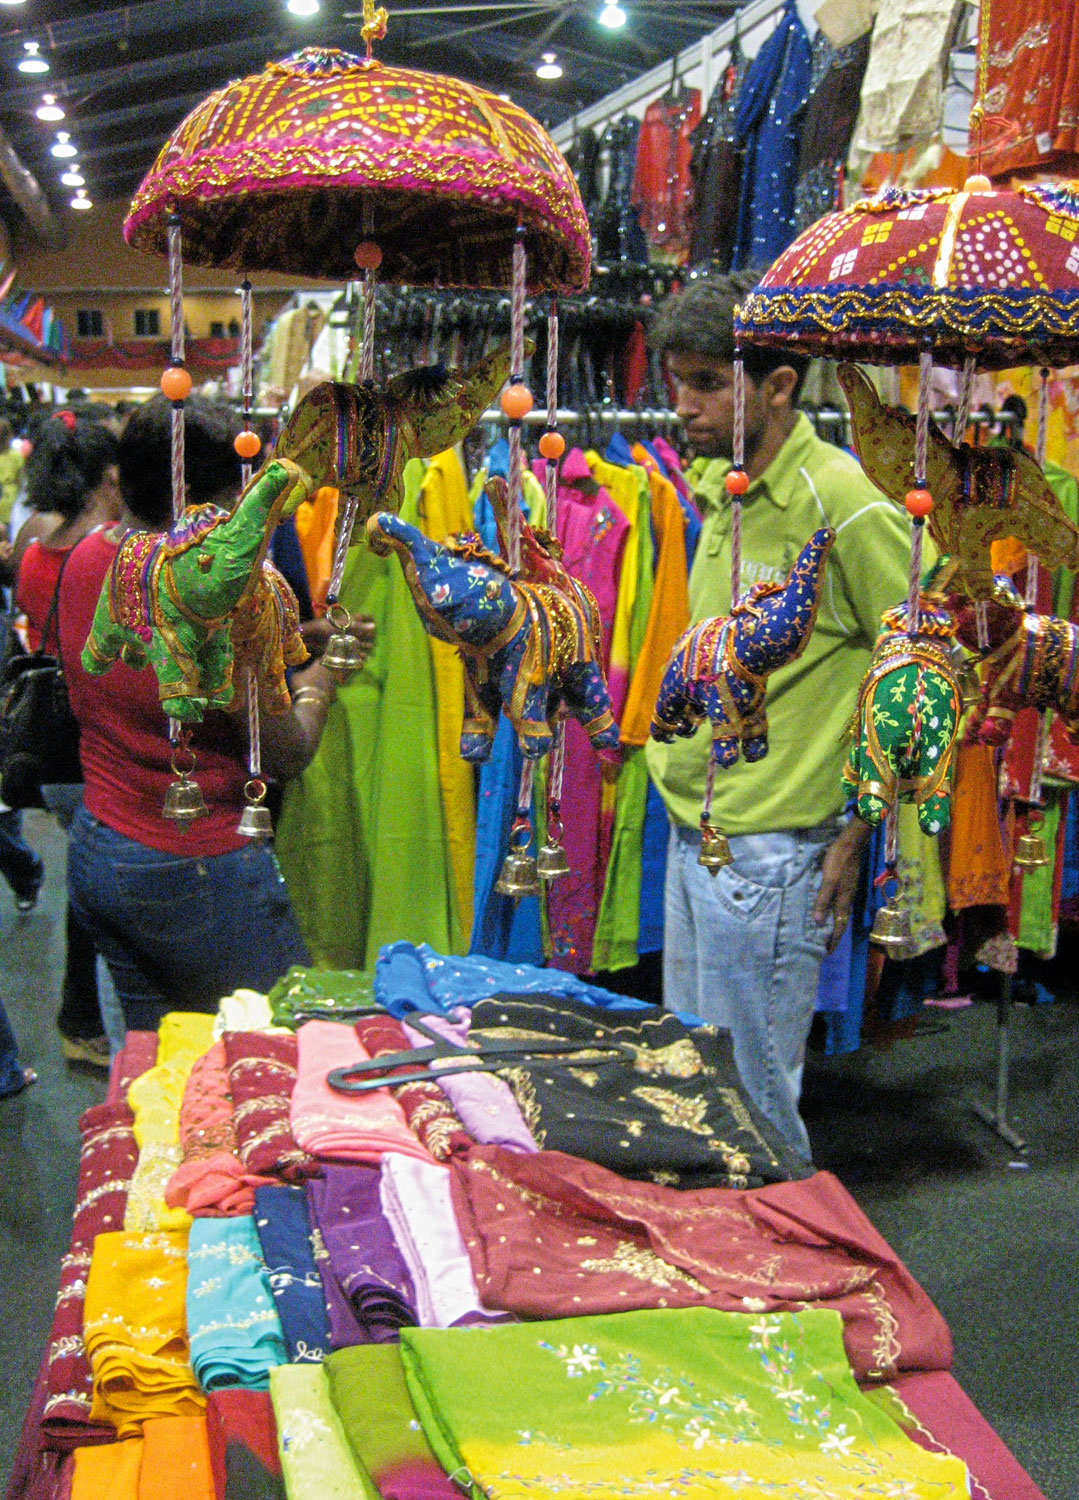 Clothing and scarves from India are huge hits at the Indian trade fairs. Photograph by James Fuller